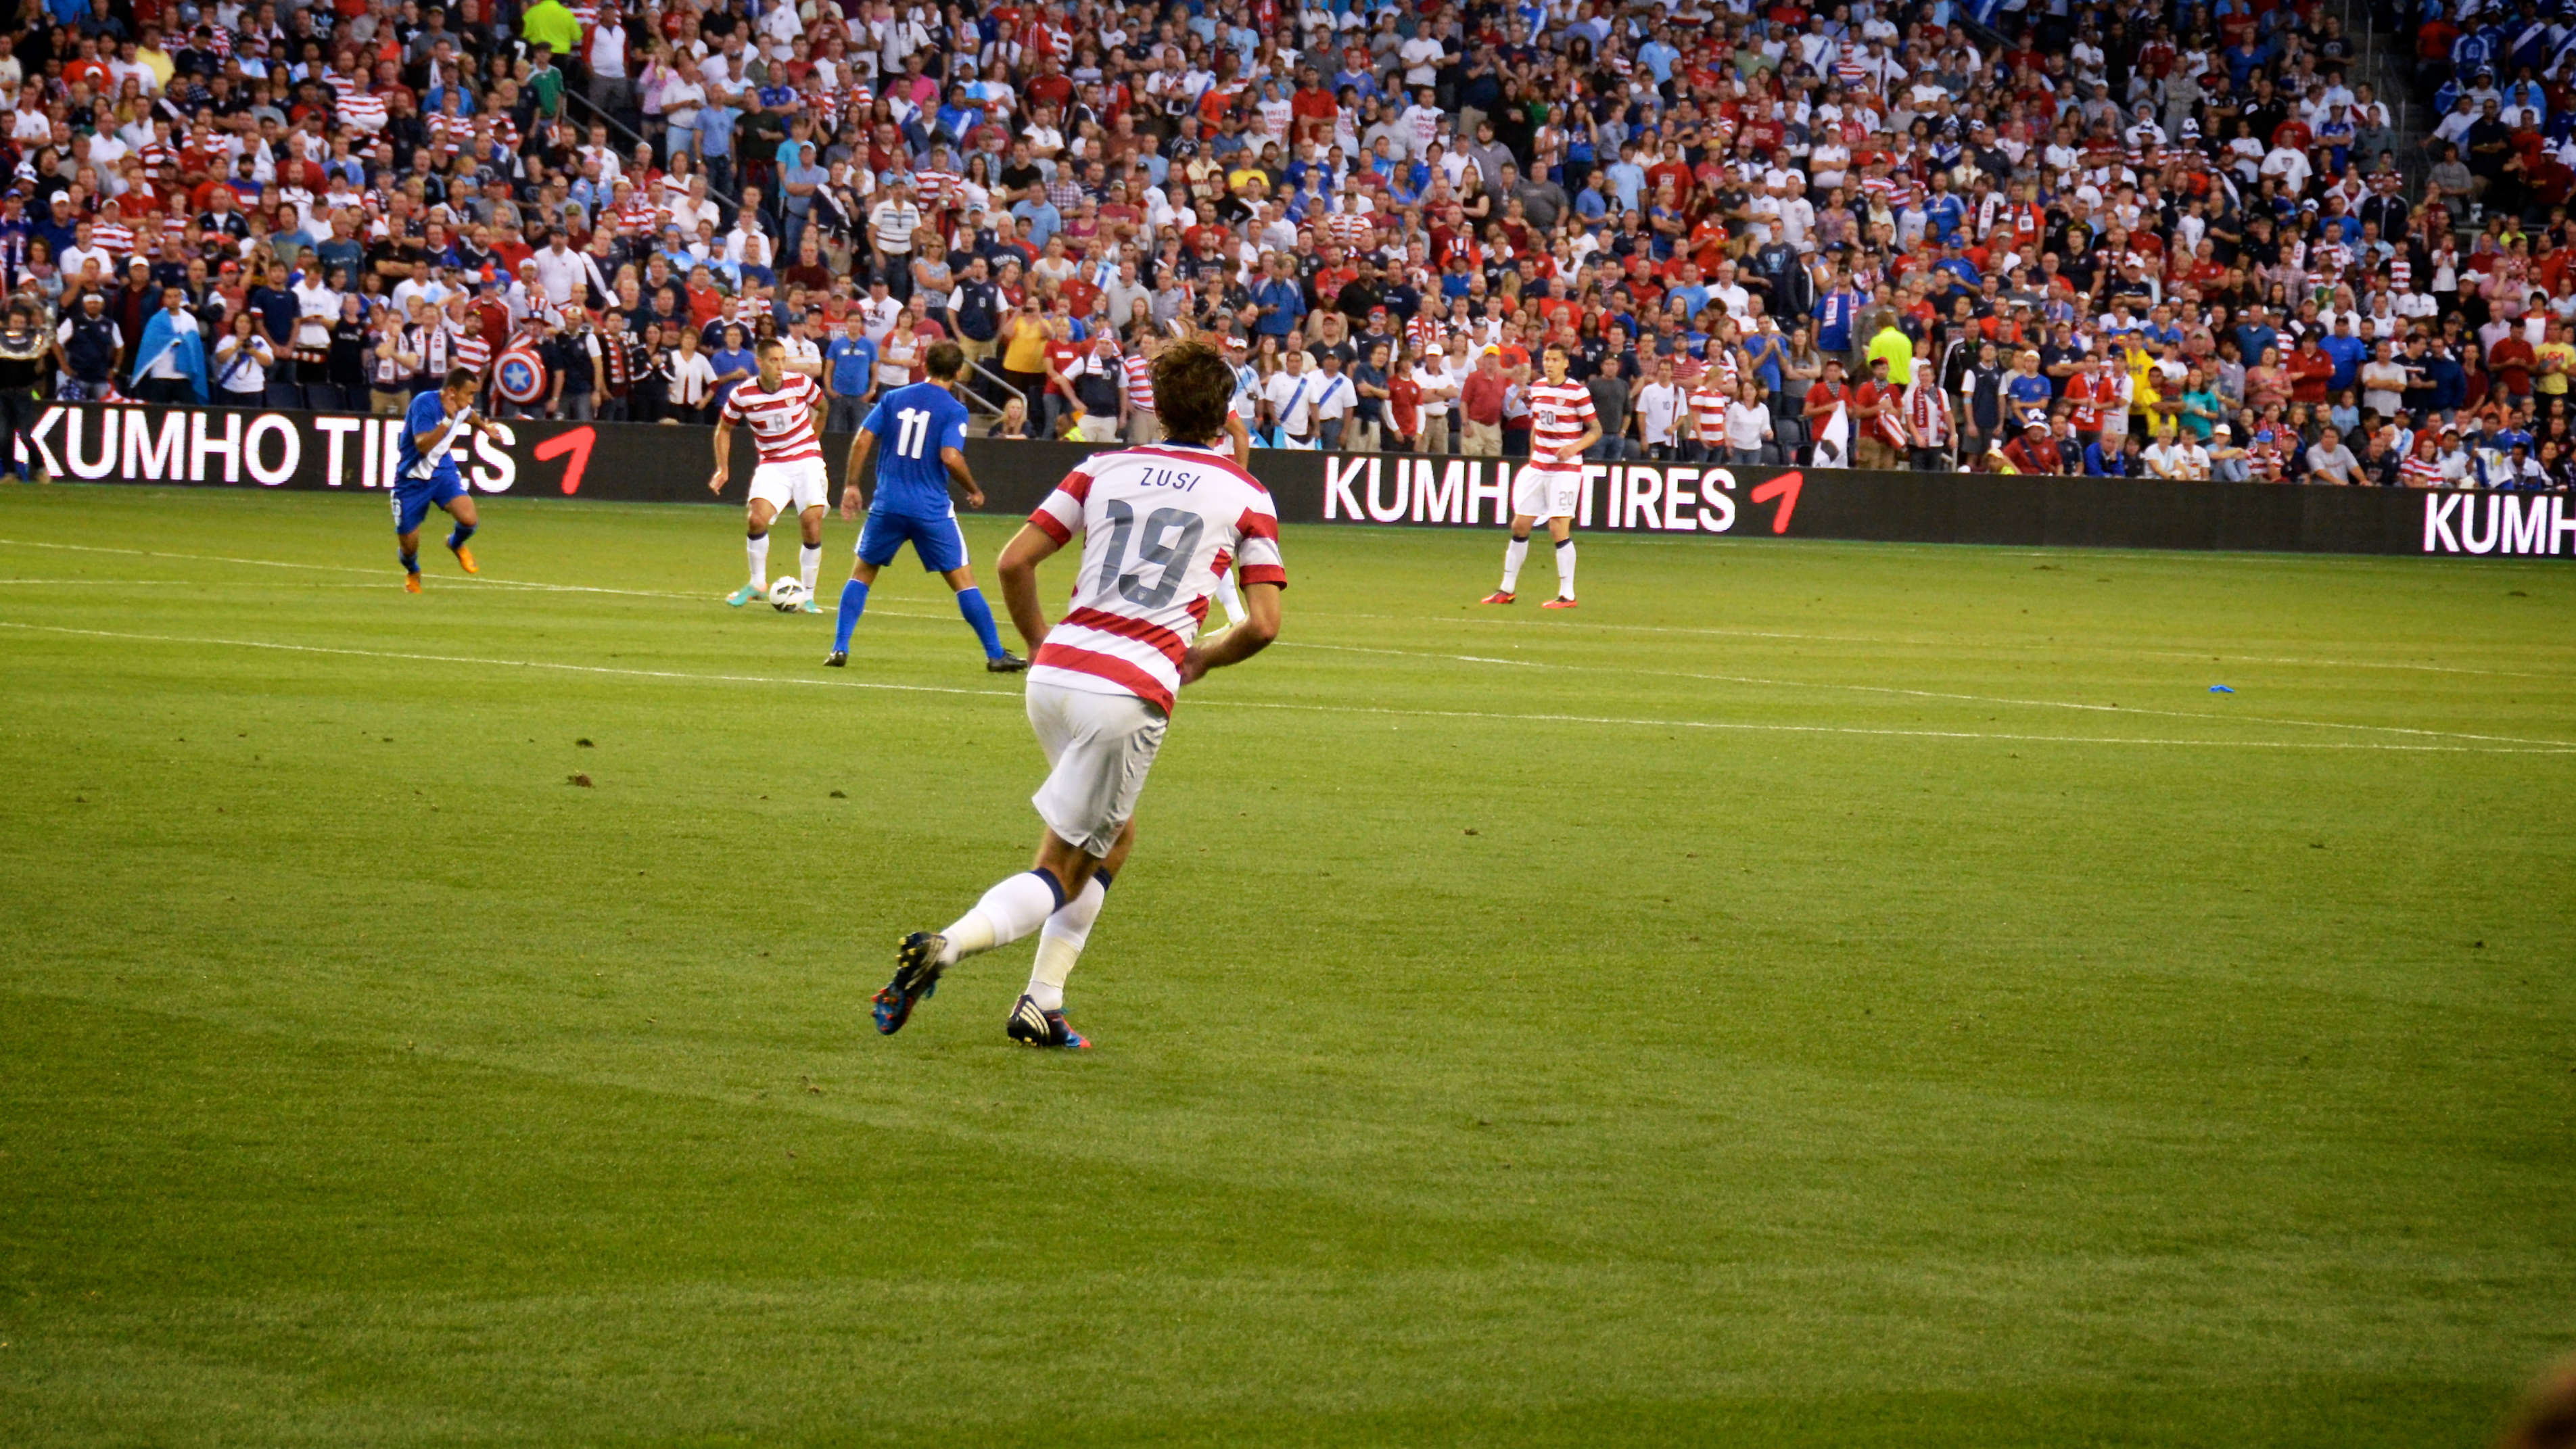 Graham Zusi taken by https://www.flickr.com/photos/proforged/